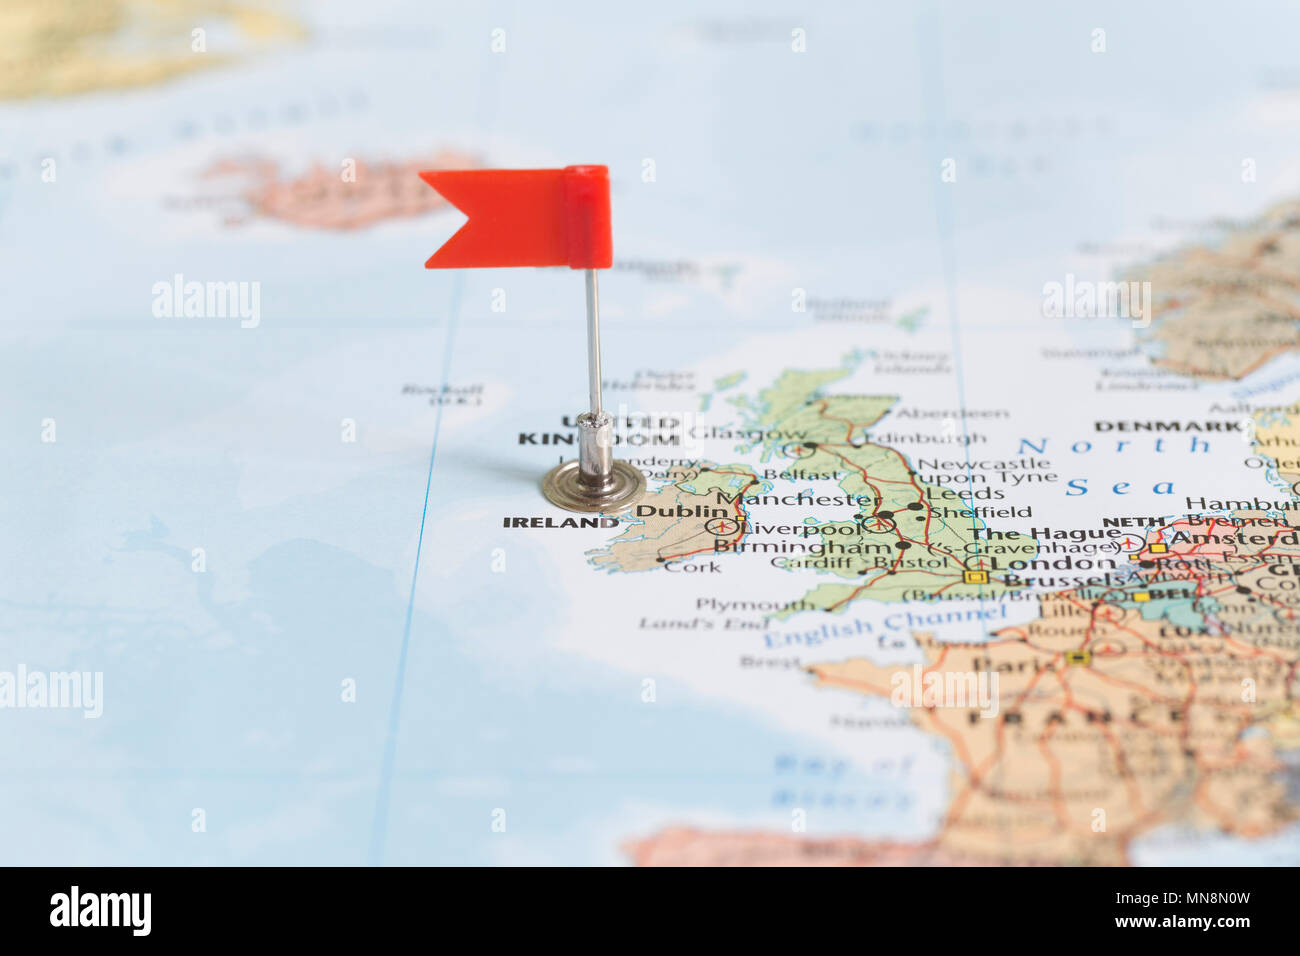 Small Map Of Ireland.Small Red Flag Marking Ireland On A World Map Stock Photo 185203561